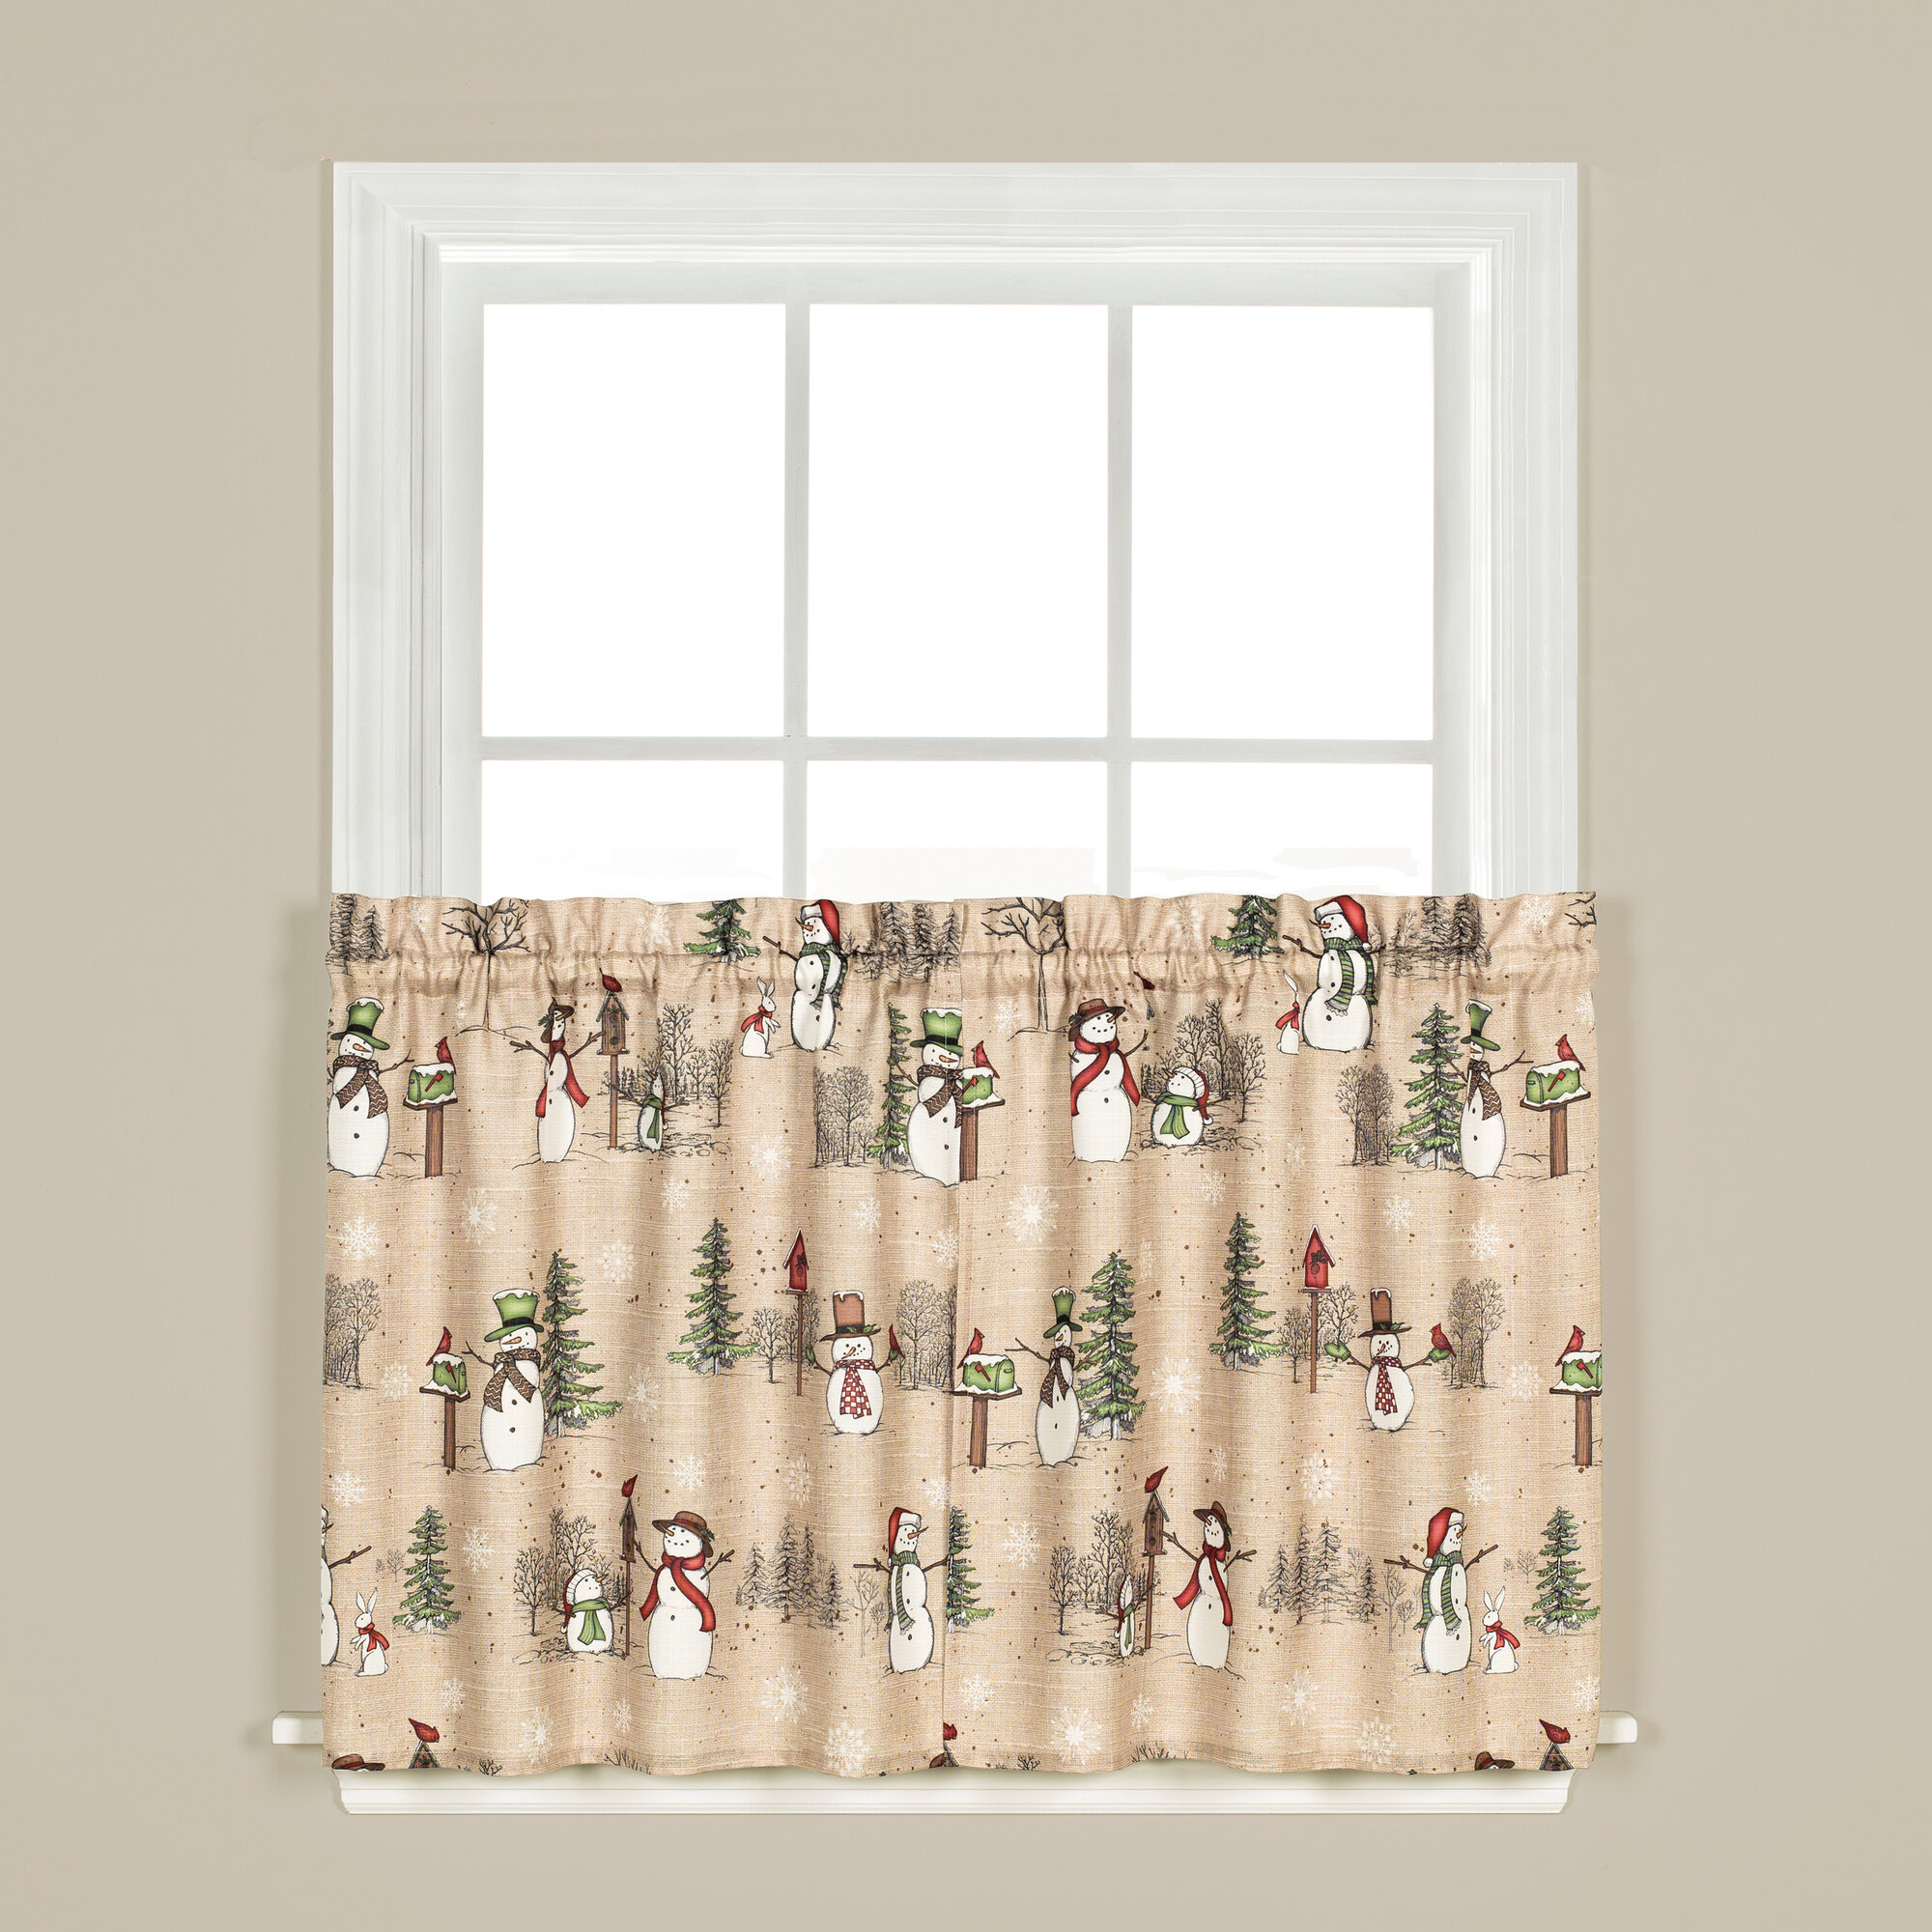 Details About The Holiday Aisle Brenna Snowman Tier Pair Cafe Curtain In Dexter 24 Inch Tier Pairs In Green (View 4 of 20)